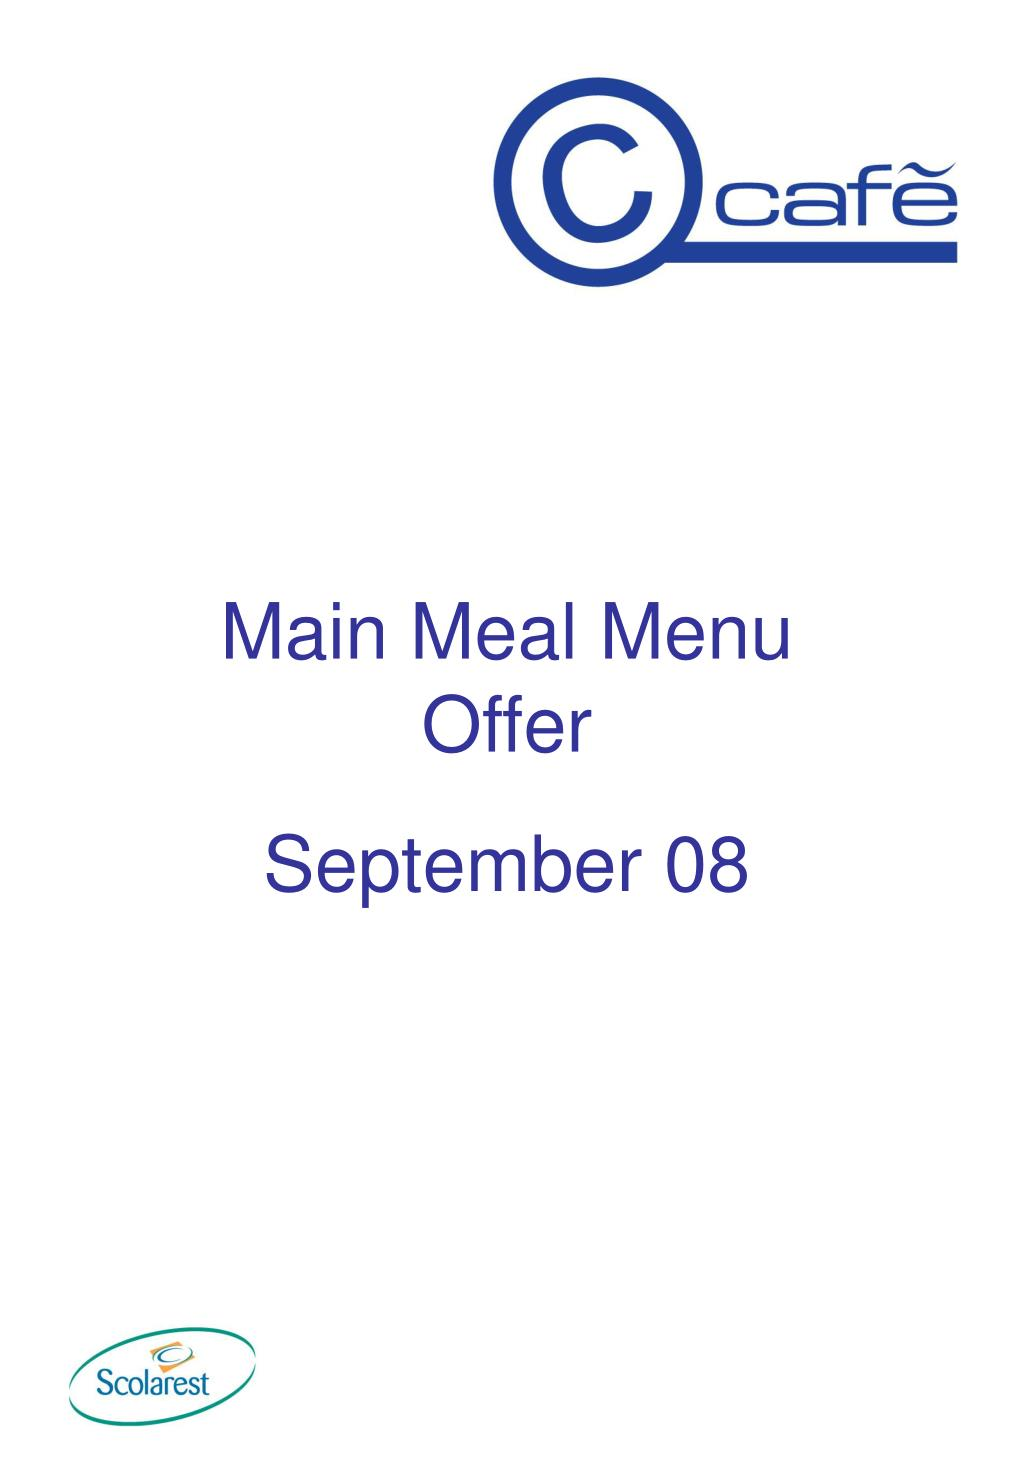 Main Meal Menu Offer